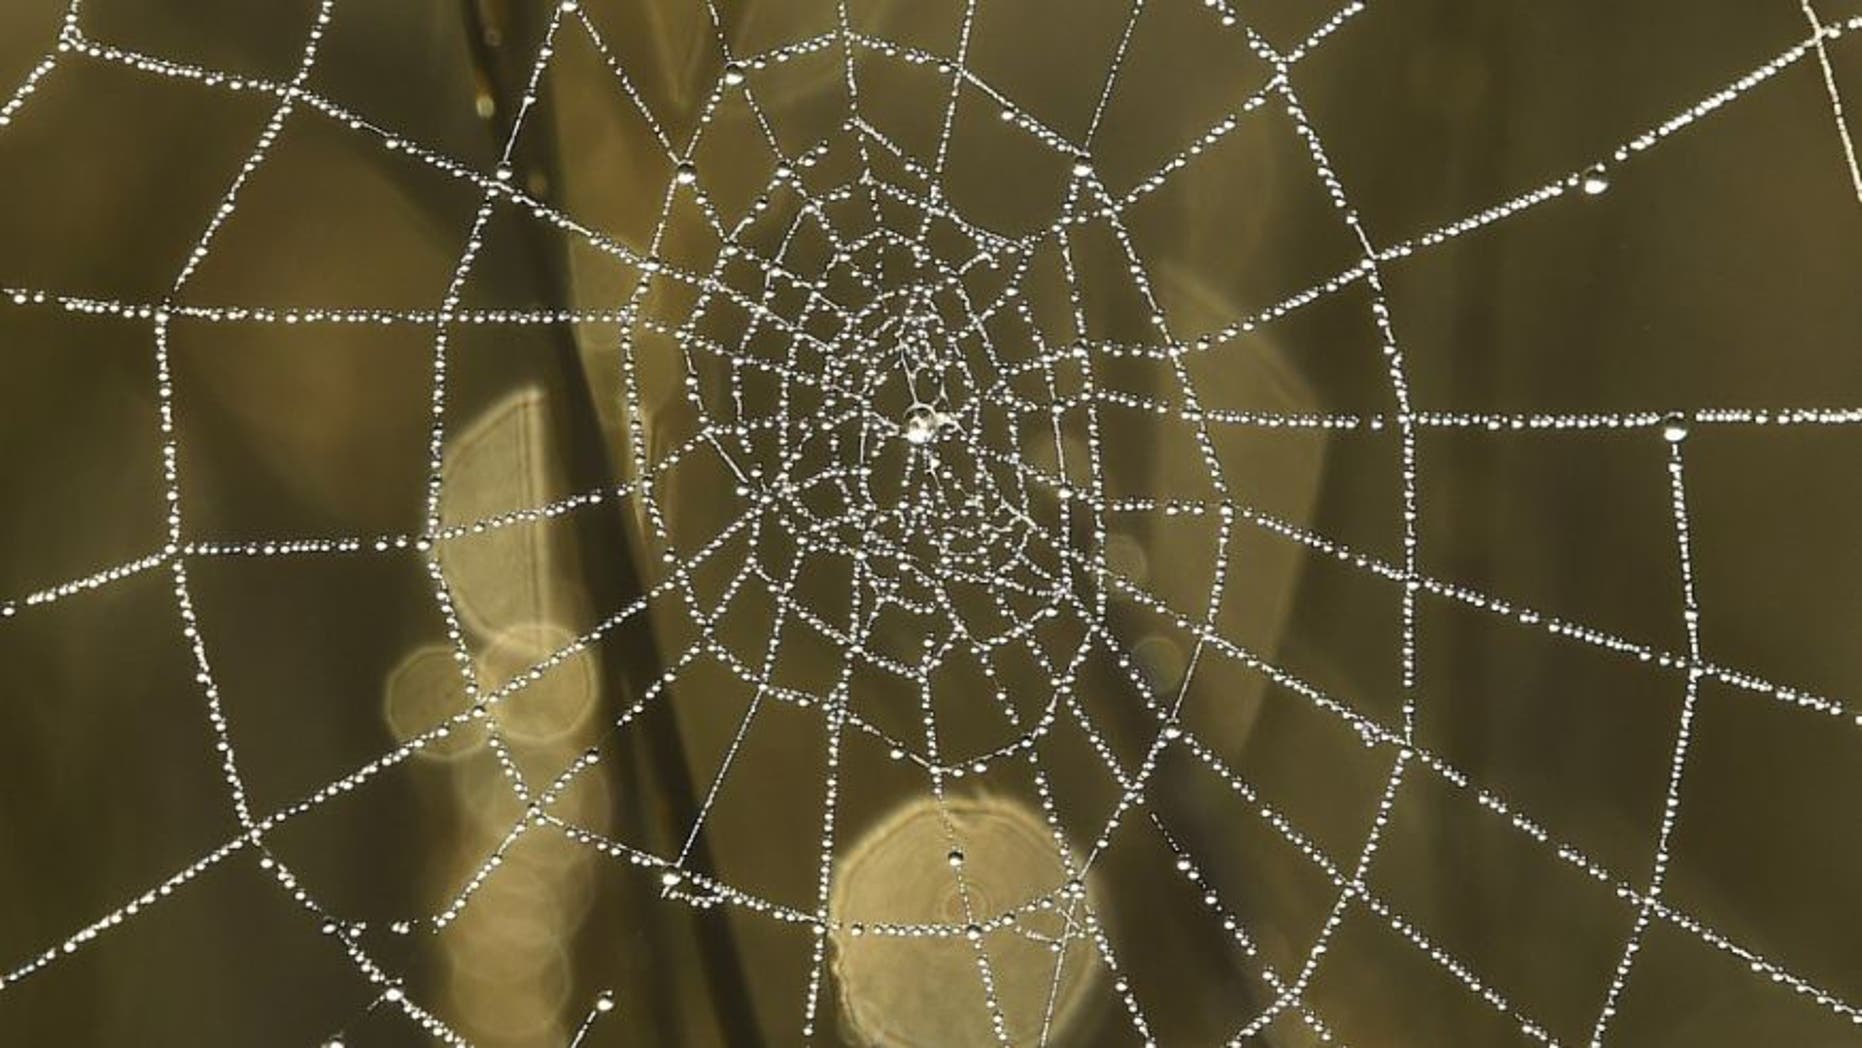 File photo - Dew drops on a spider web reflect the morning sun in Richmond Park in west London, Britain, Oct. 2, 2015. (REUTERS/Toby Melville)